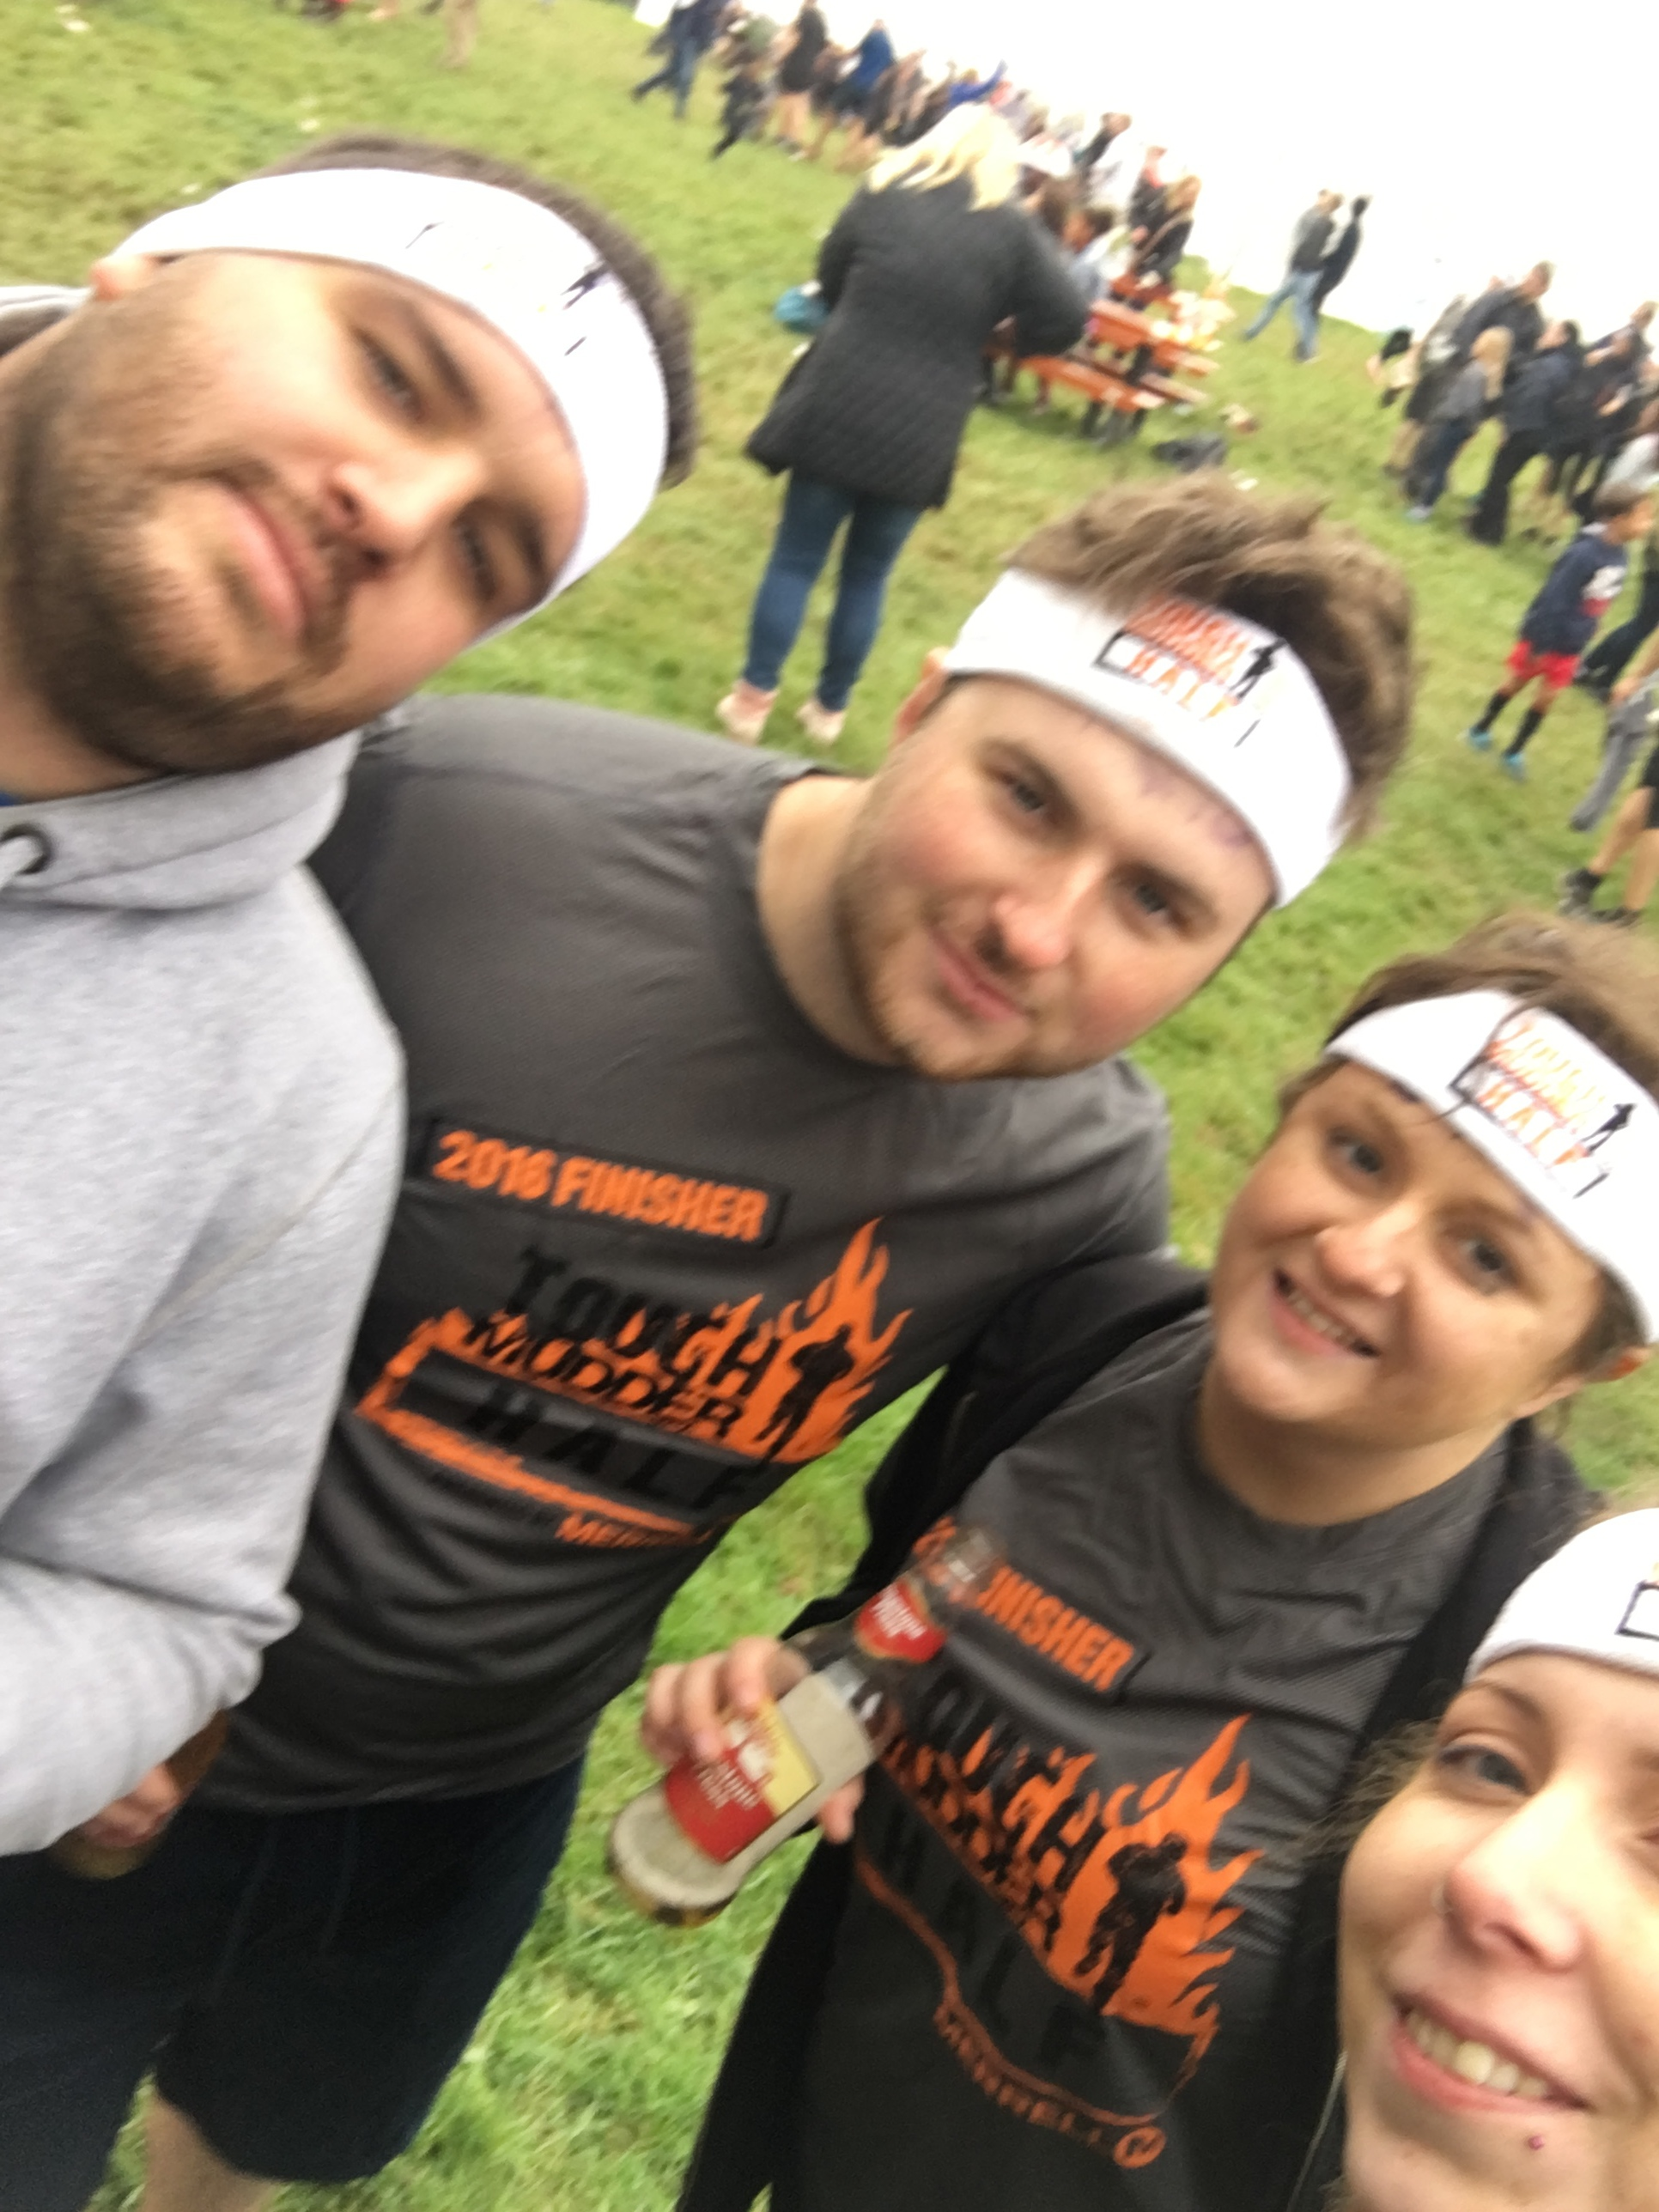 payroll-accountancy-firm-hampshire-alton-mascolo-styles-toughmudder